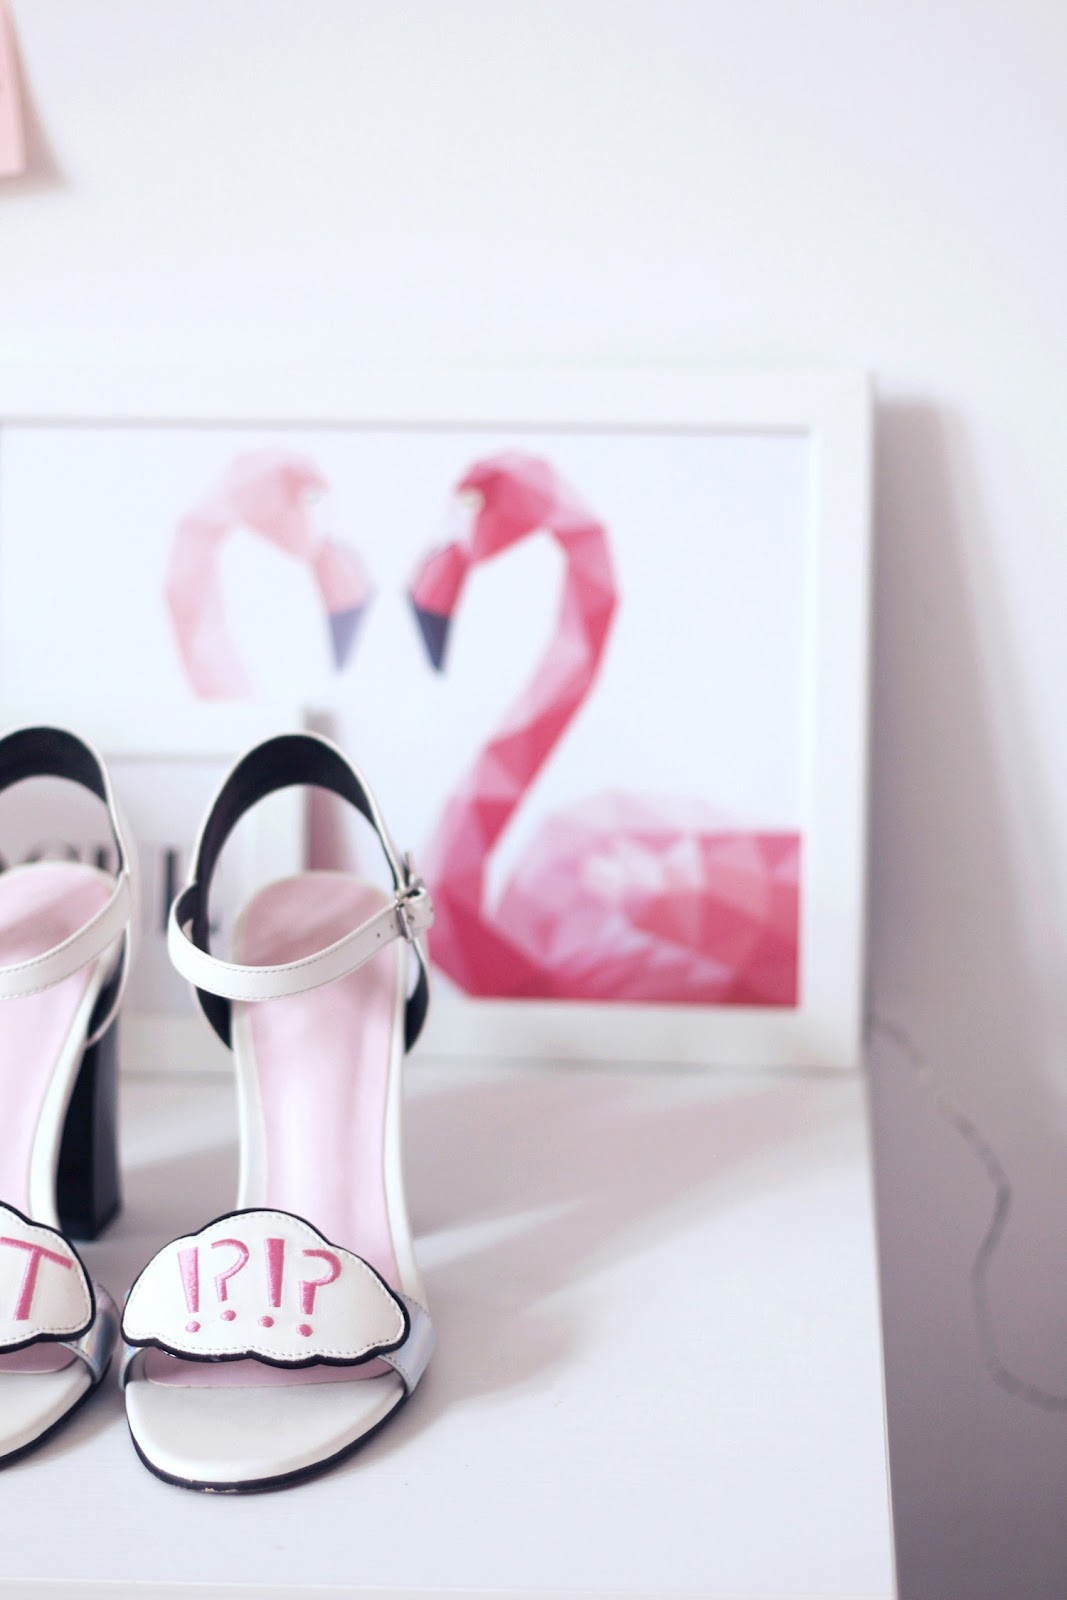 fashion shoes heels sandals asos flamingo interior design home pink sophia webster vogue glamour shoeting